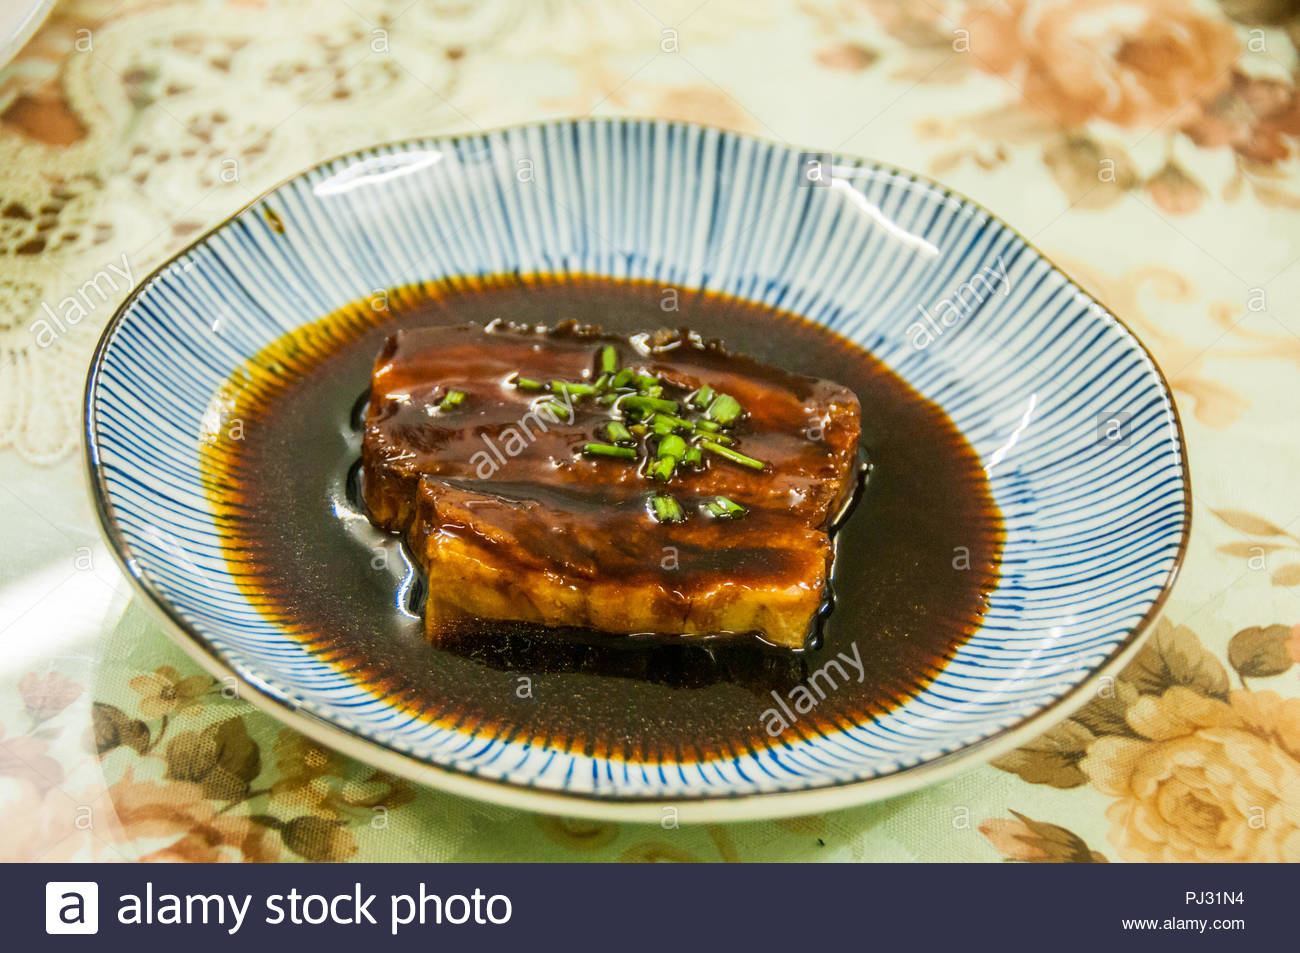 A traditionally home cooked hongshaorou dish which has been cooked for many hours at the Yu's home in an old style Shanghai building. - Stock Image